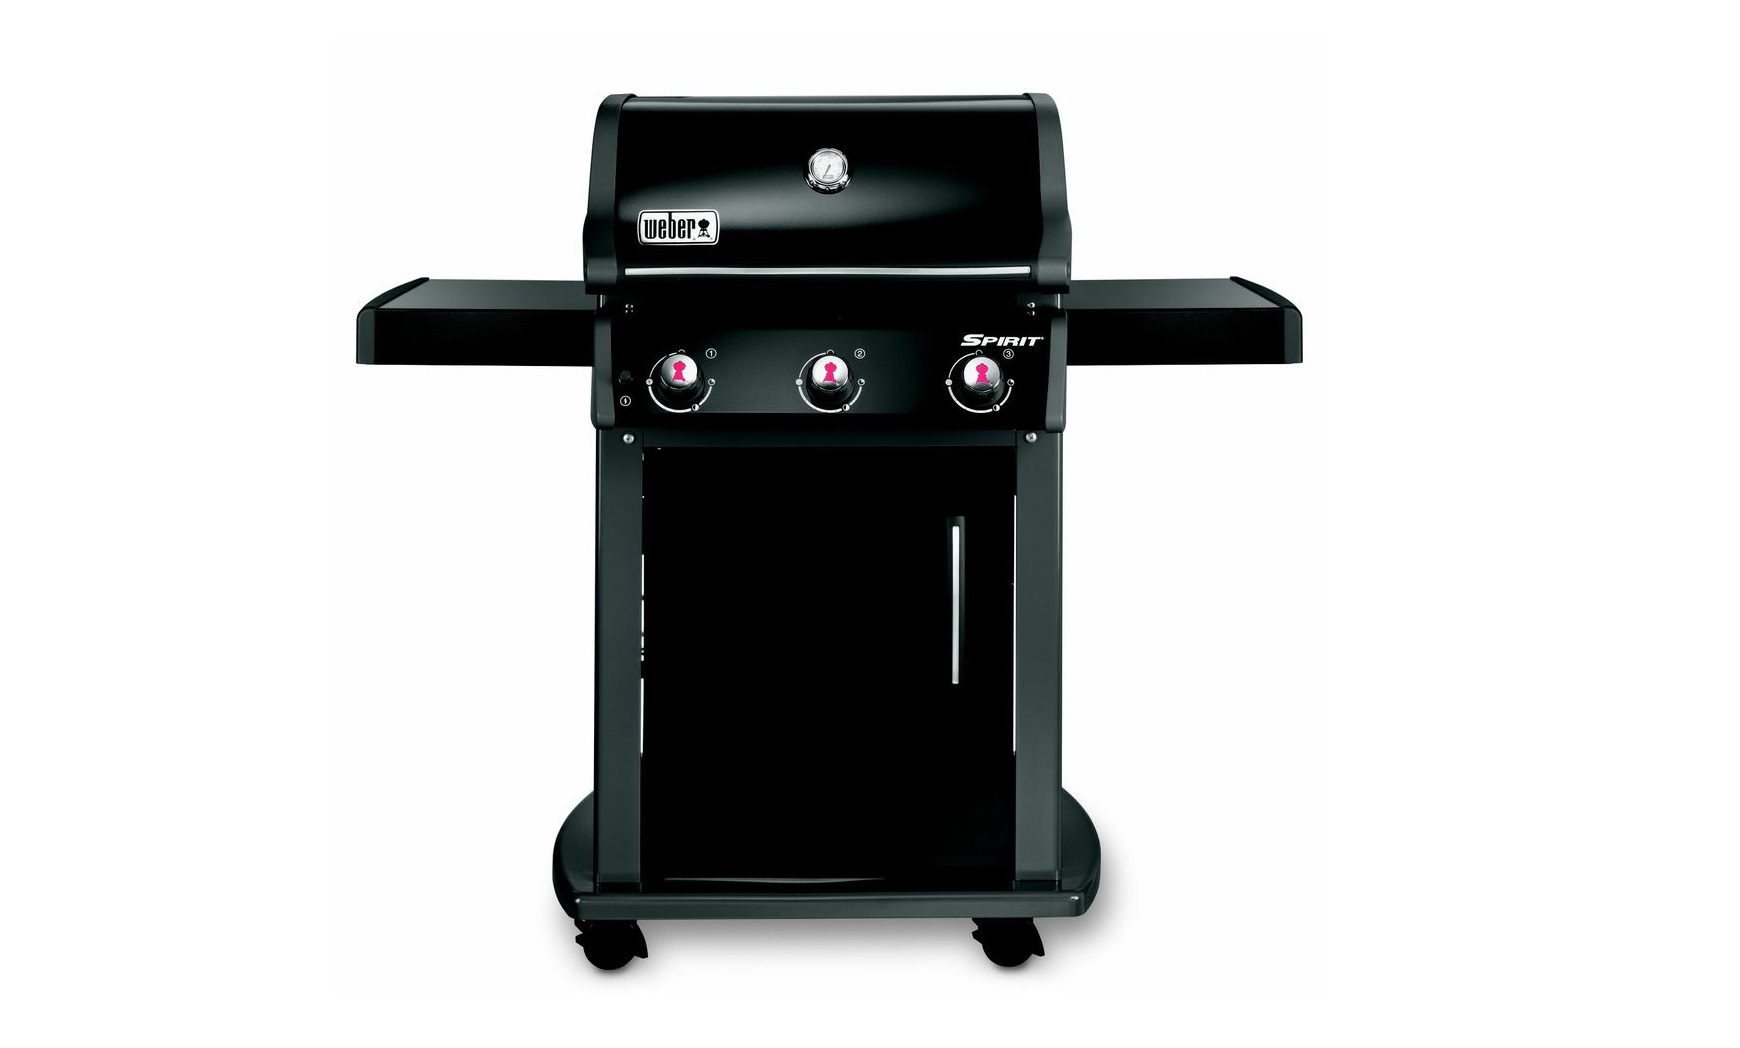 weber spirit classic e 210 gas bbq norwich camping. Black Bedroom Furniture Sets. Home Design Ideas